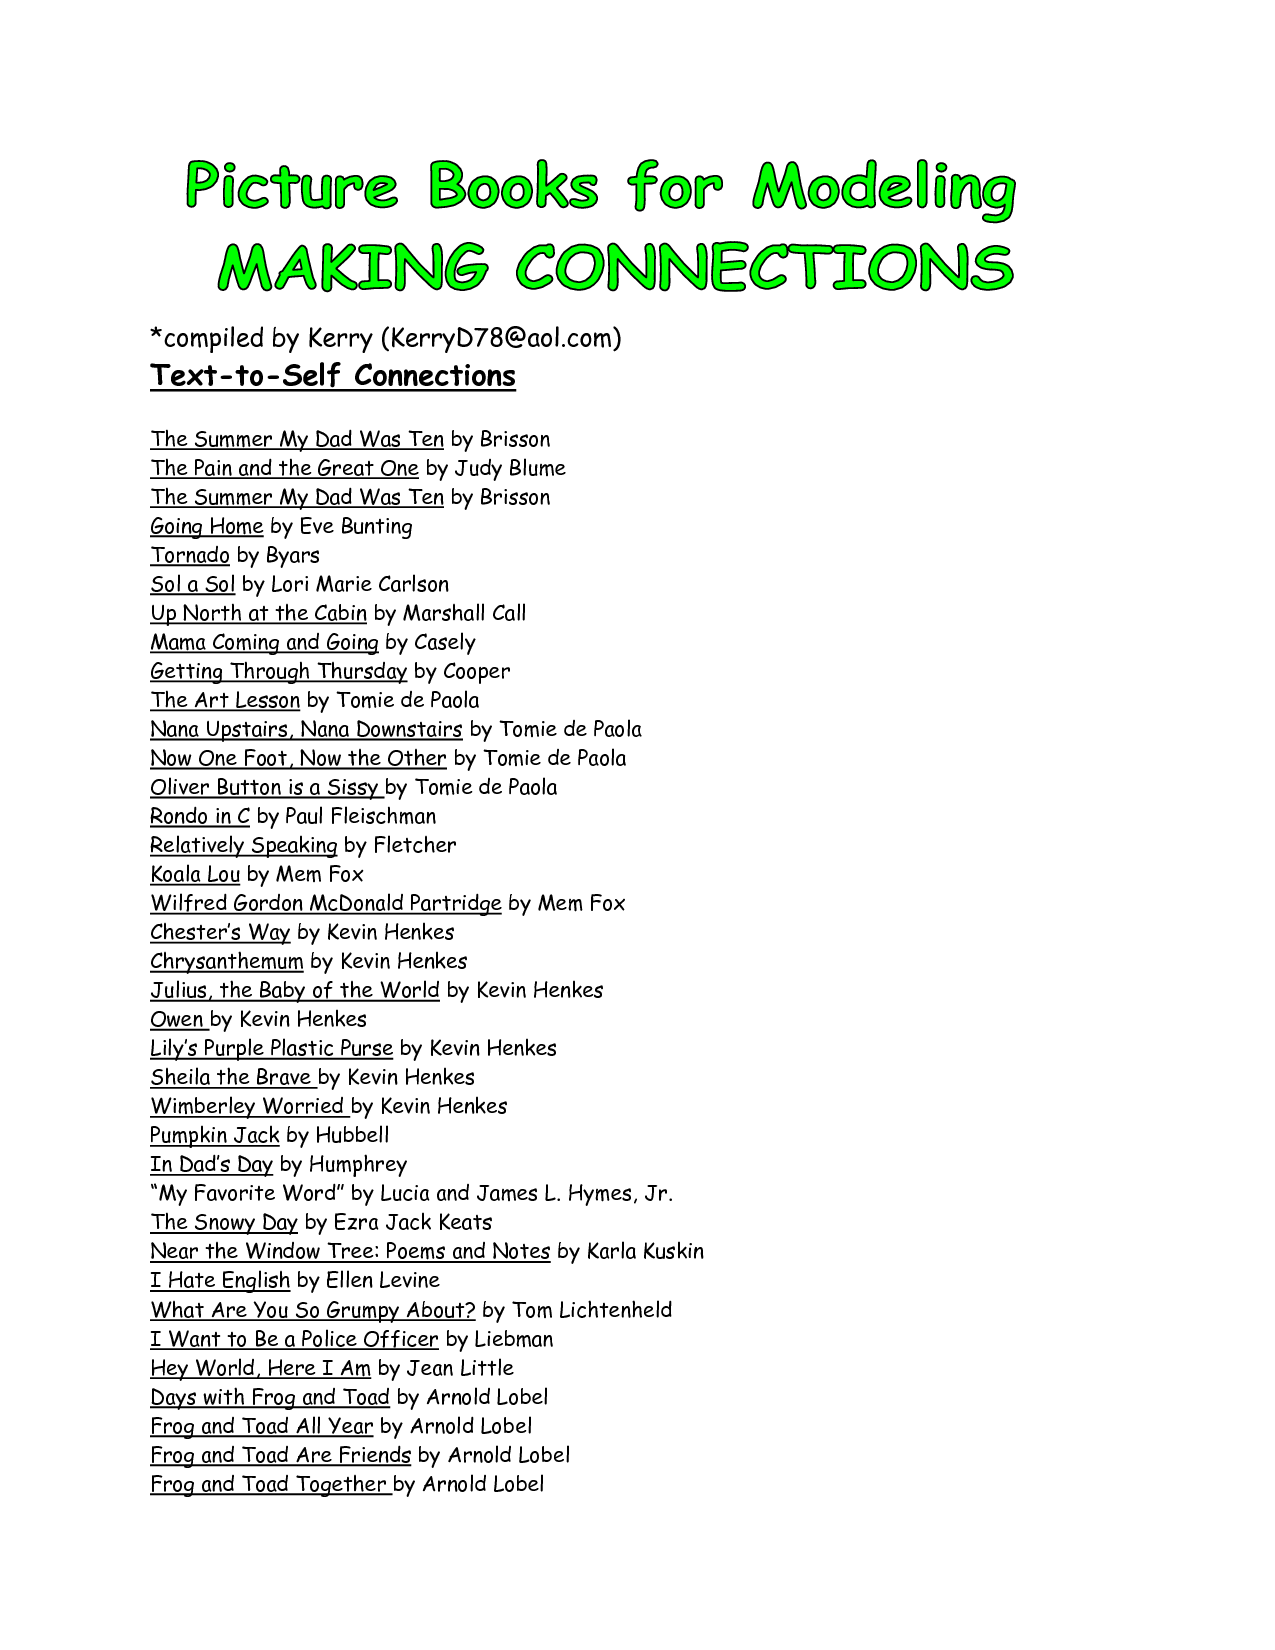 Text-to-Self Connections - PDF | Teaching - Making Connections